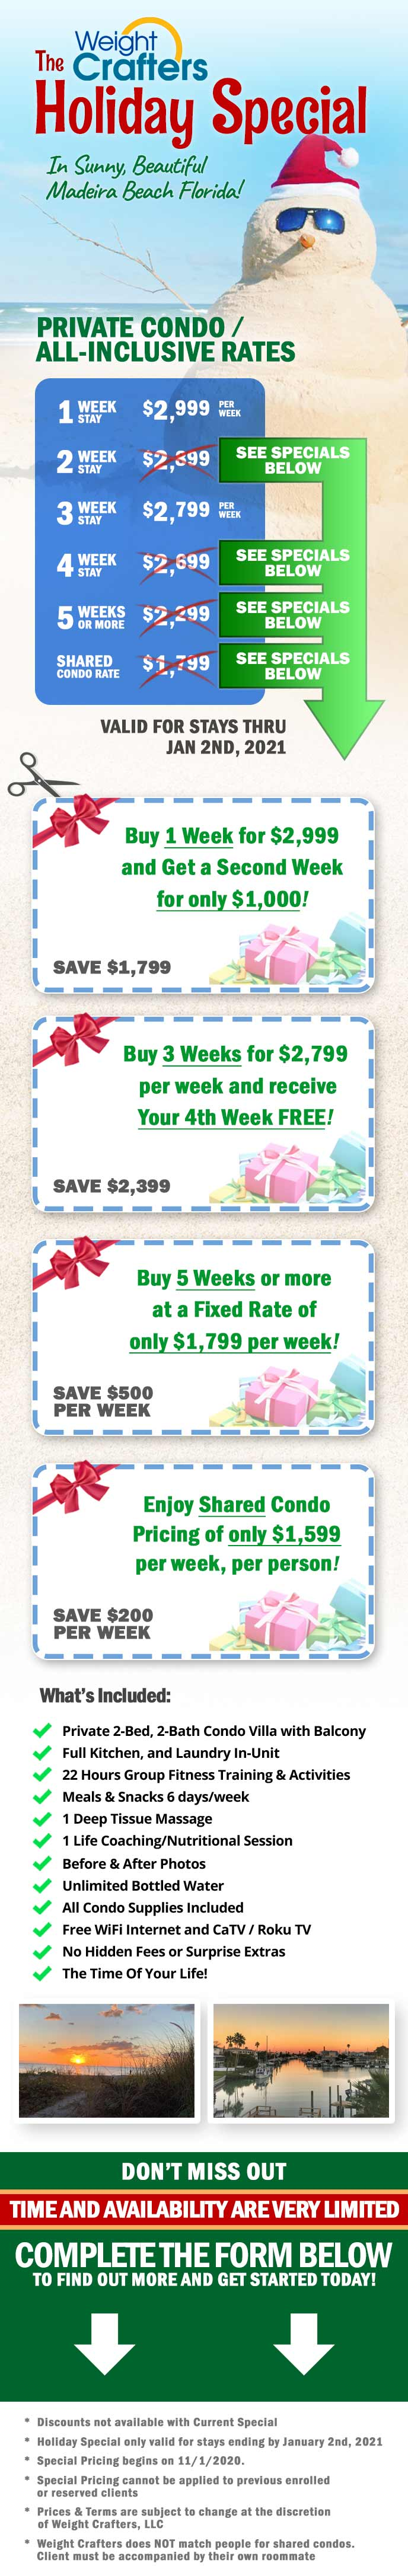 Limited time special rates for the holidays.